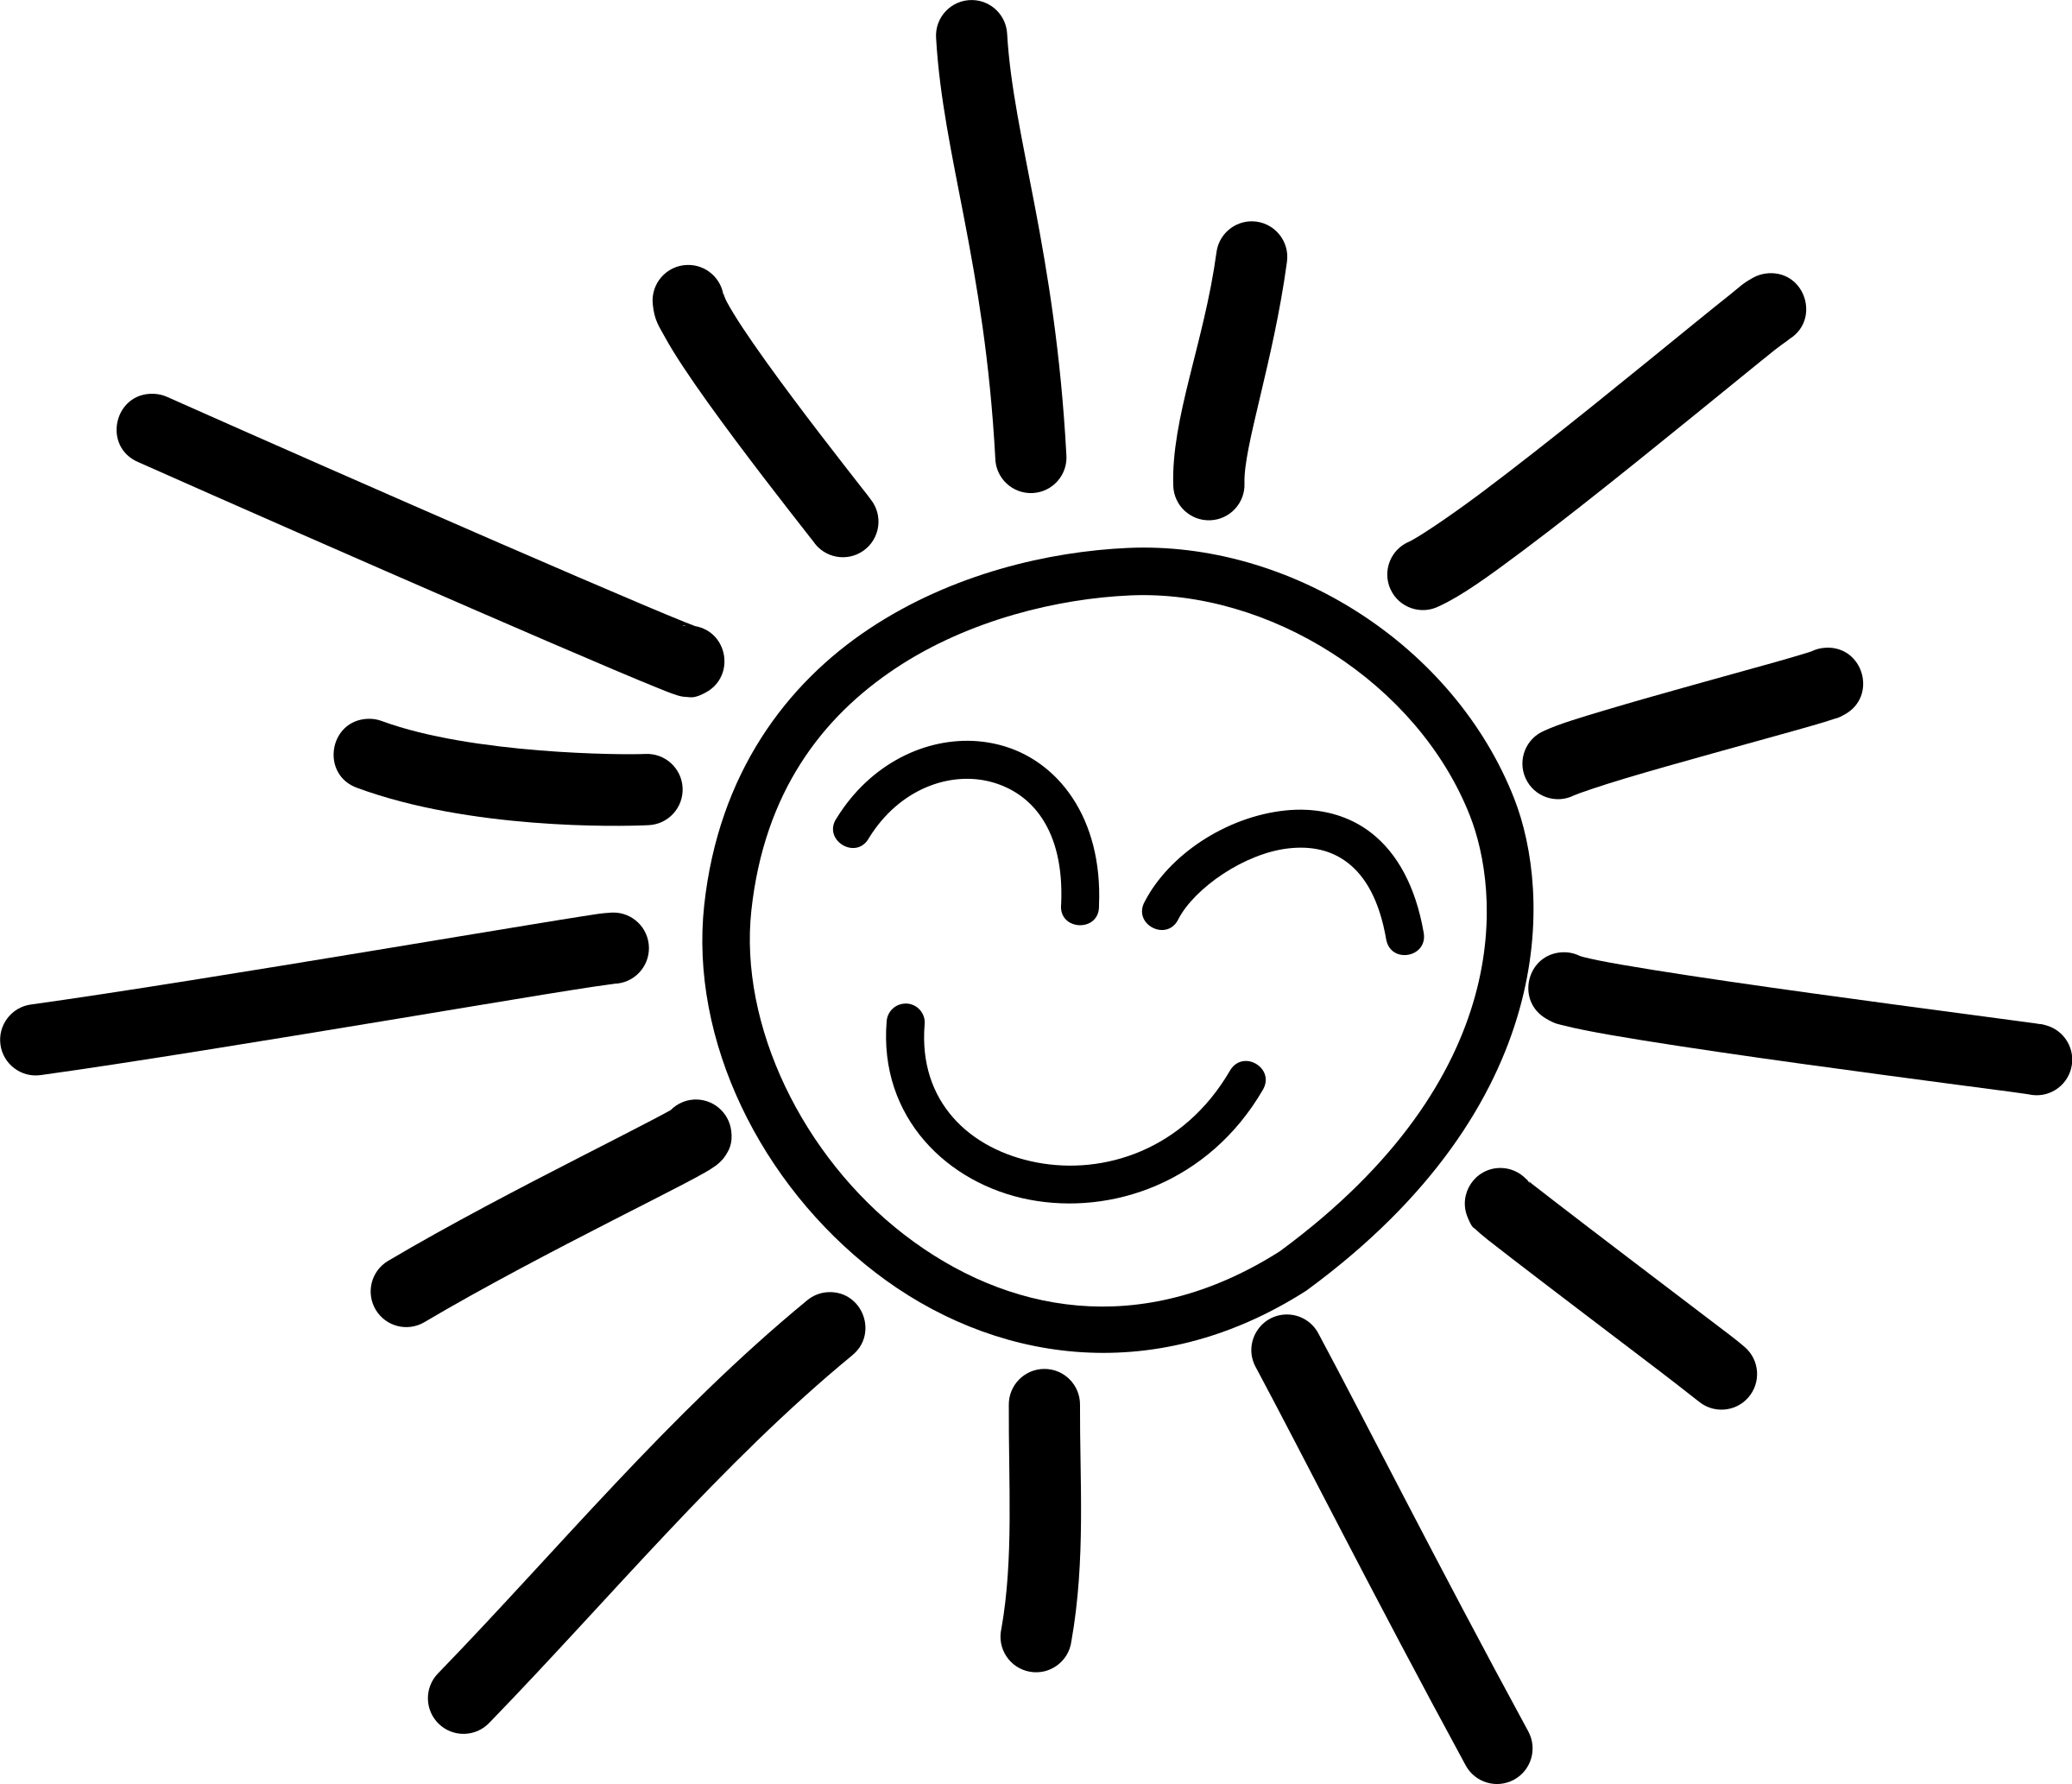 Sun png black and white. Collection of clipart